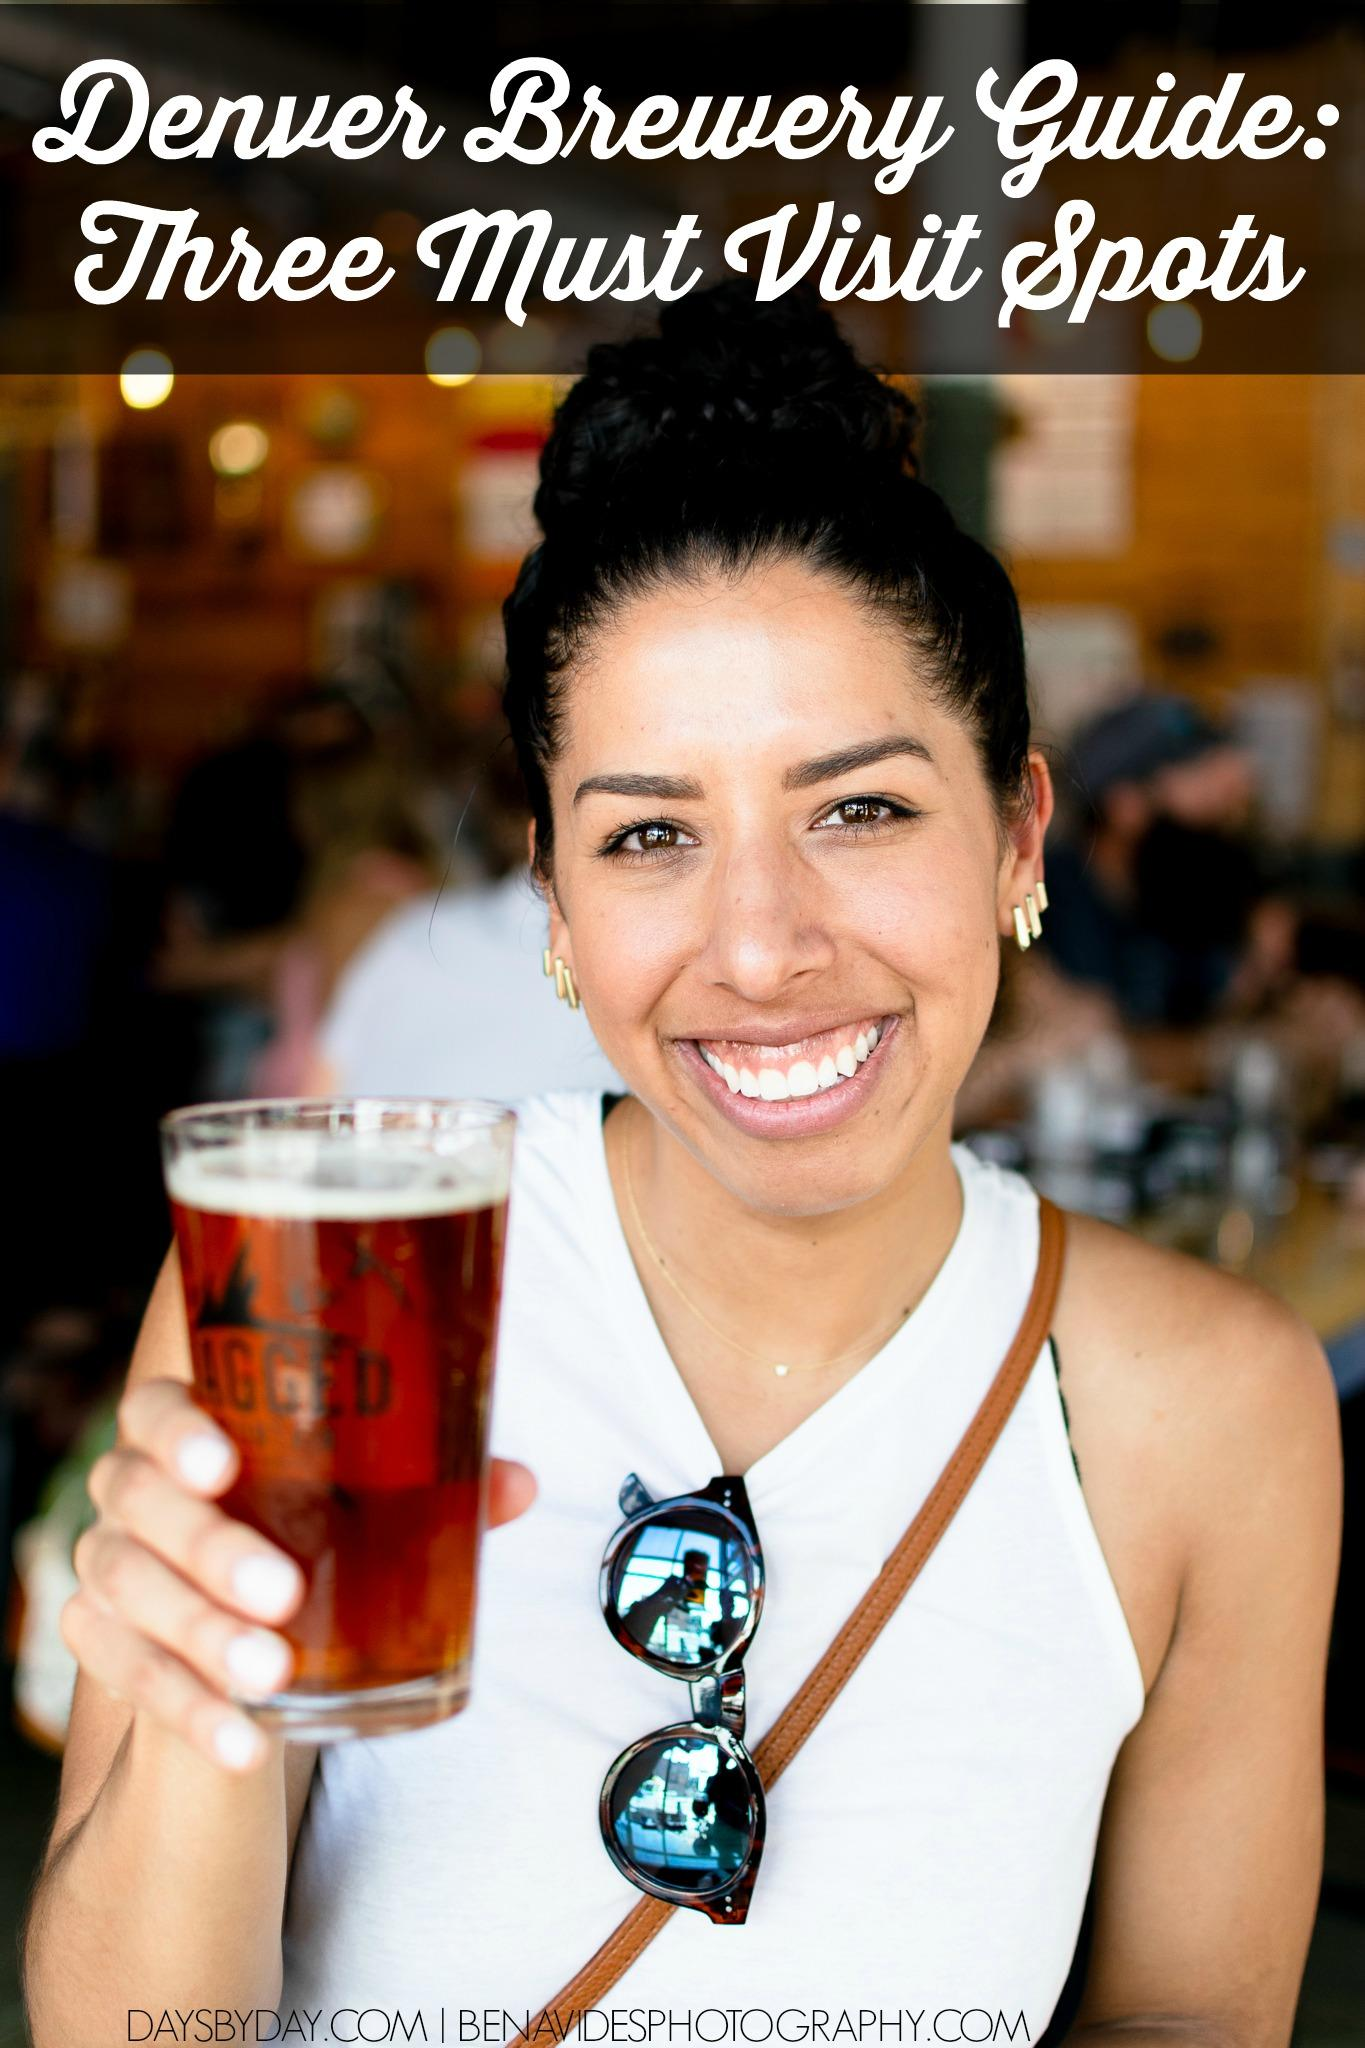 Denver Brewery Guide: Feat. Benavides Photography